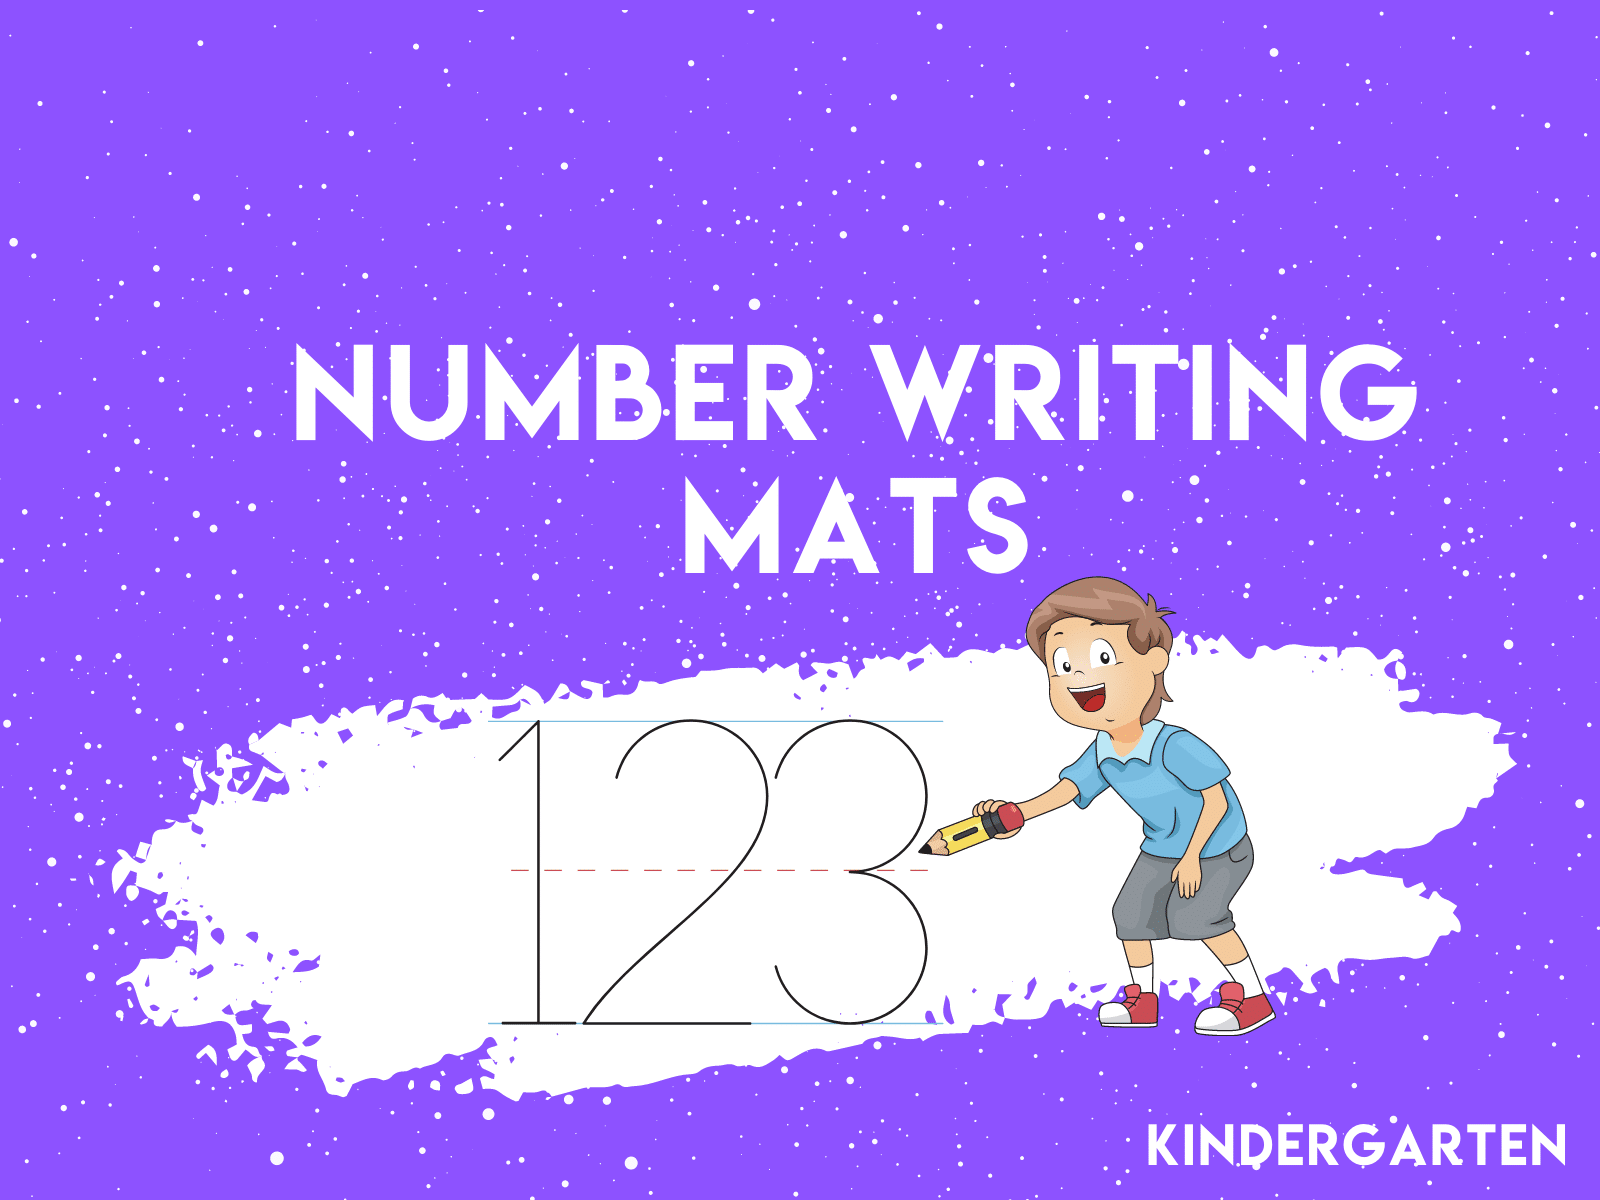 Number writing mats help kindergarten students learn to form numbers.